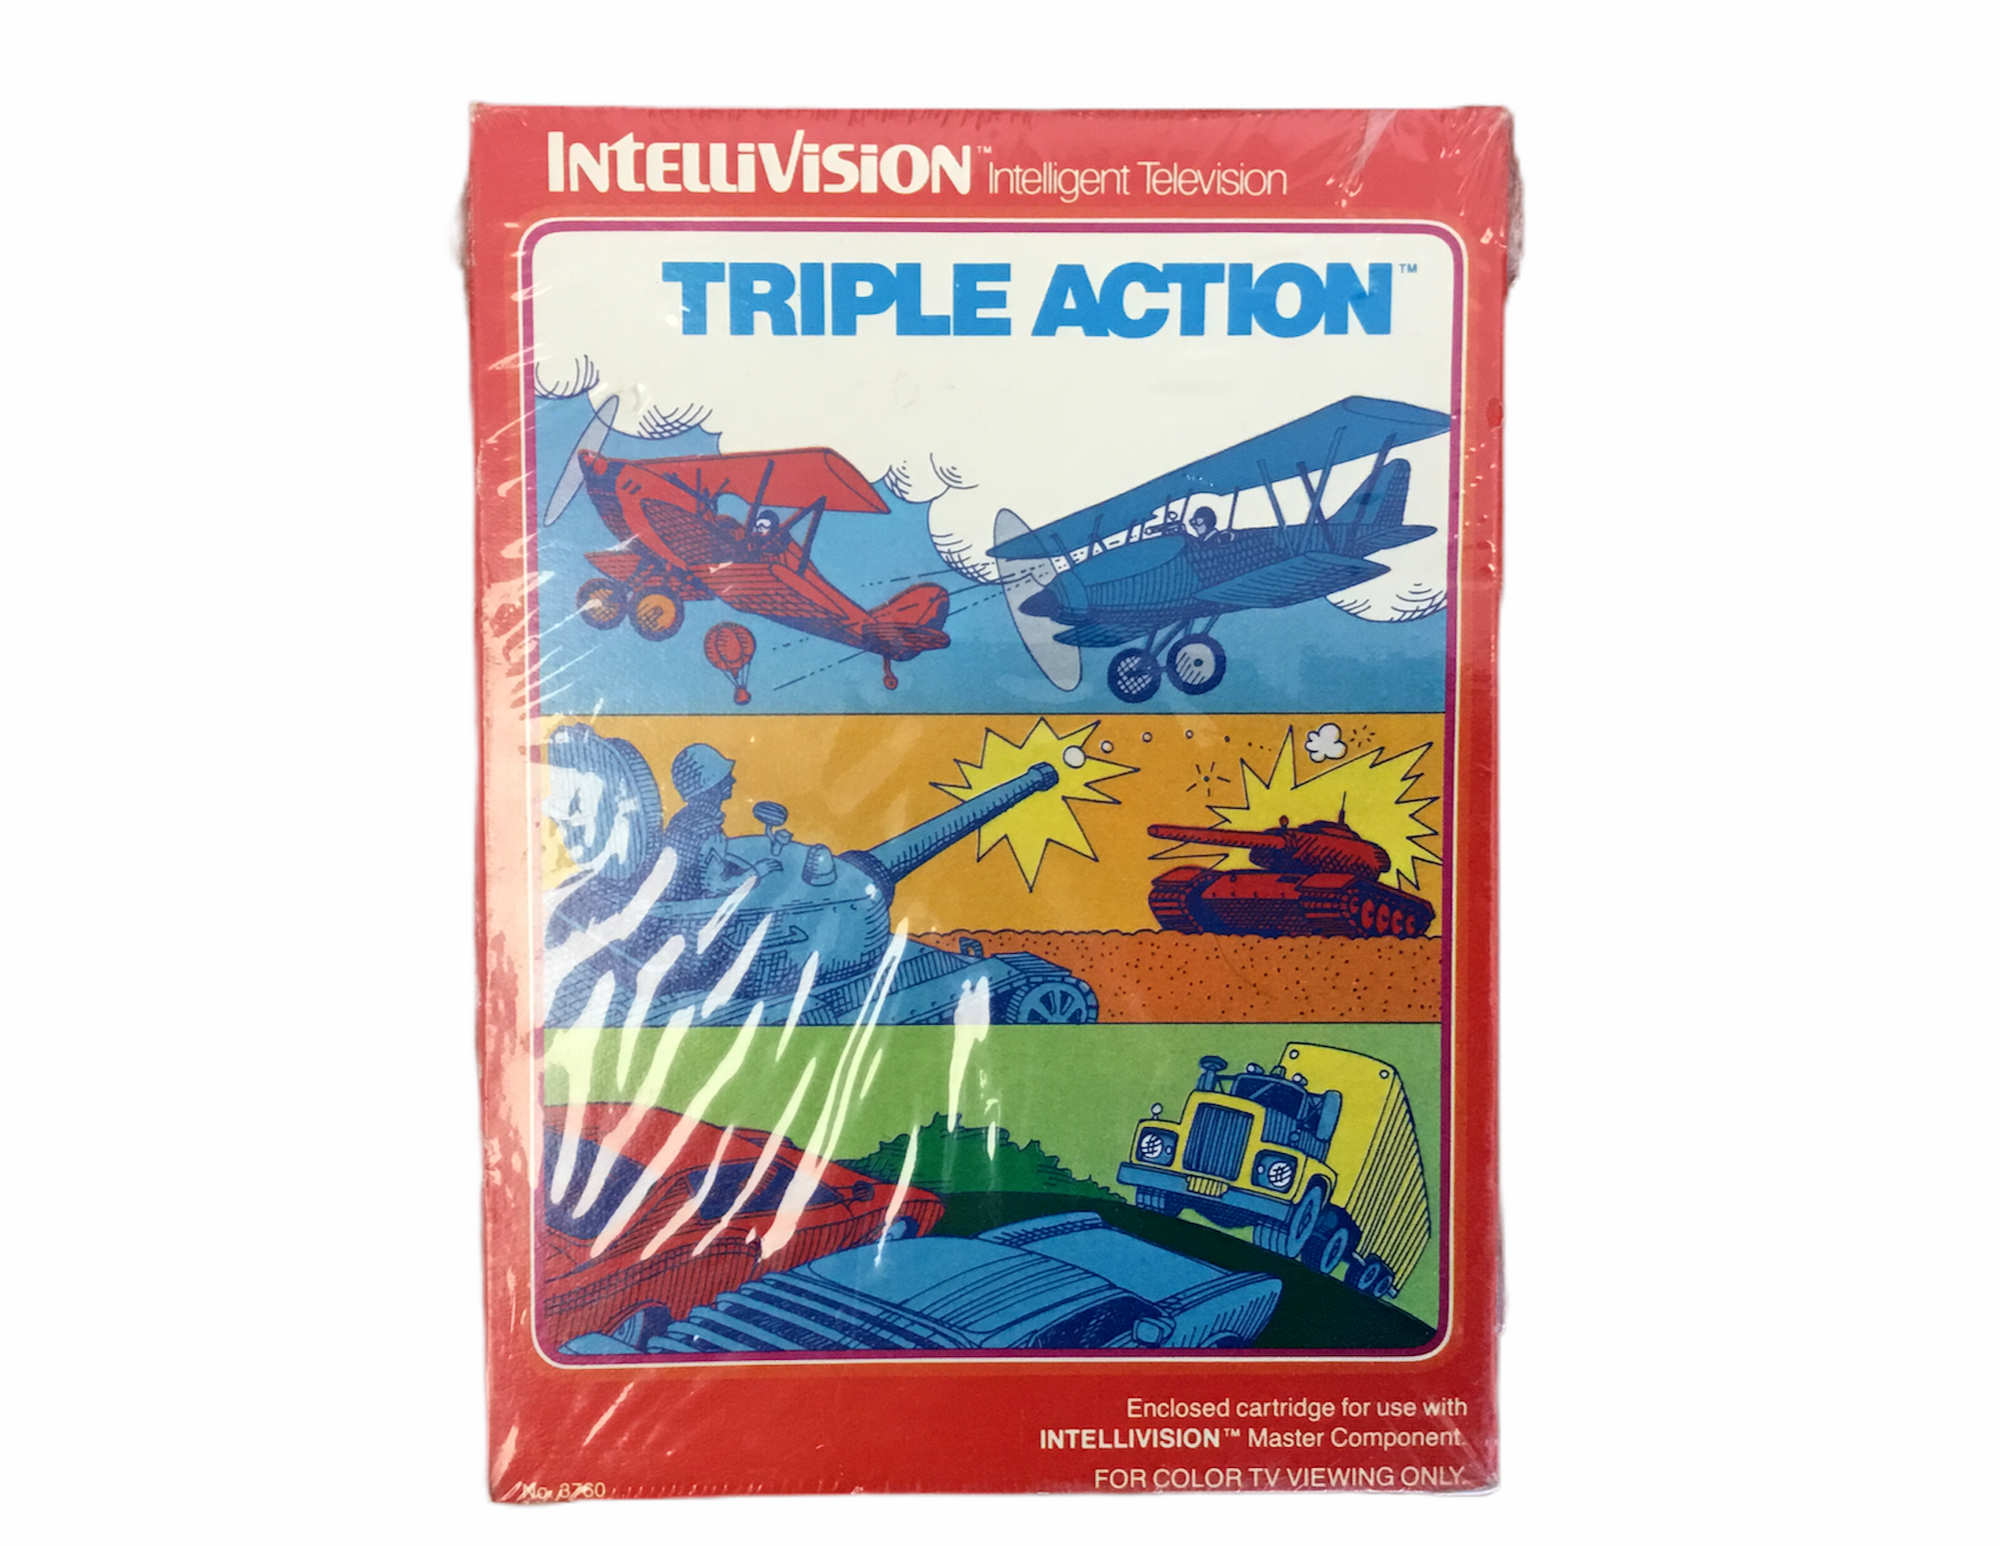 Intellivision Triple Action Vintage Retro Video Game T894